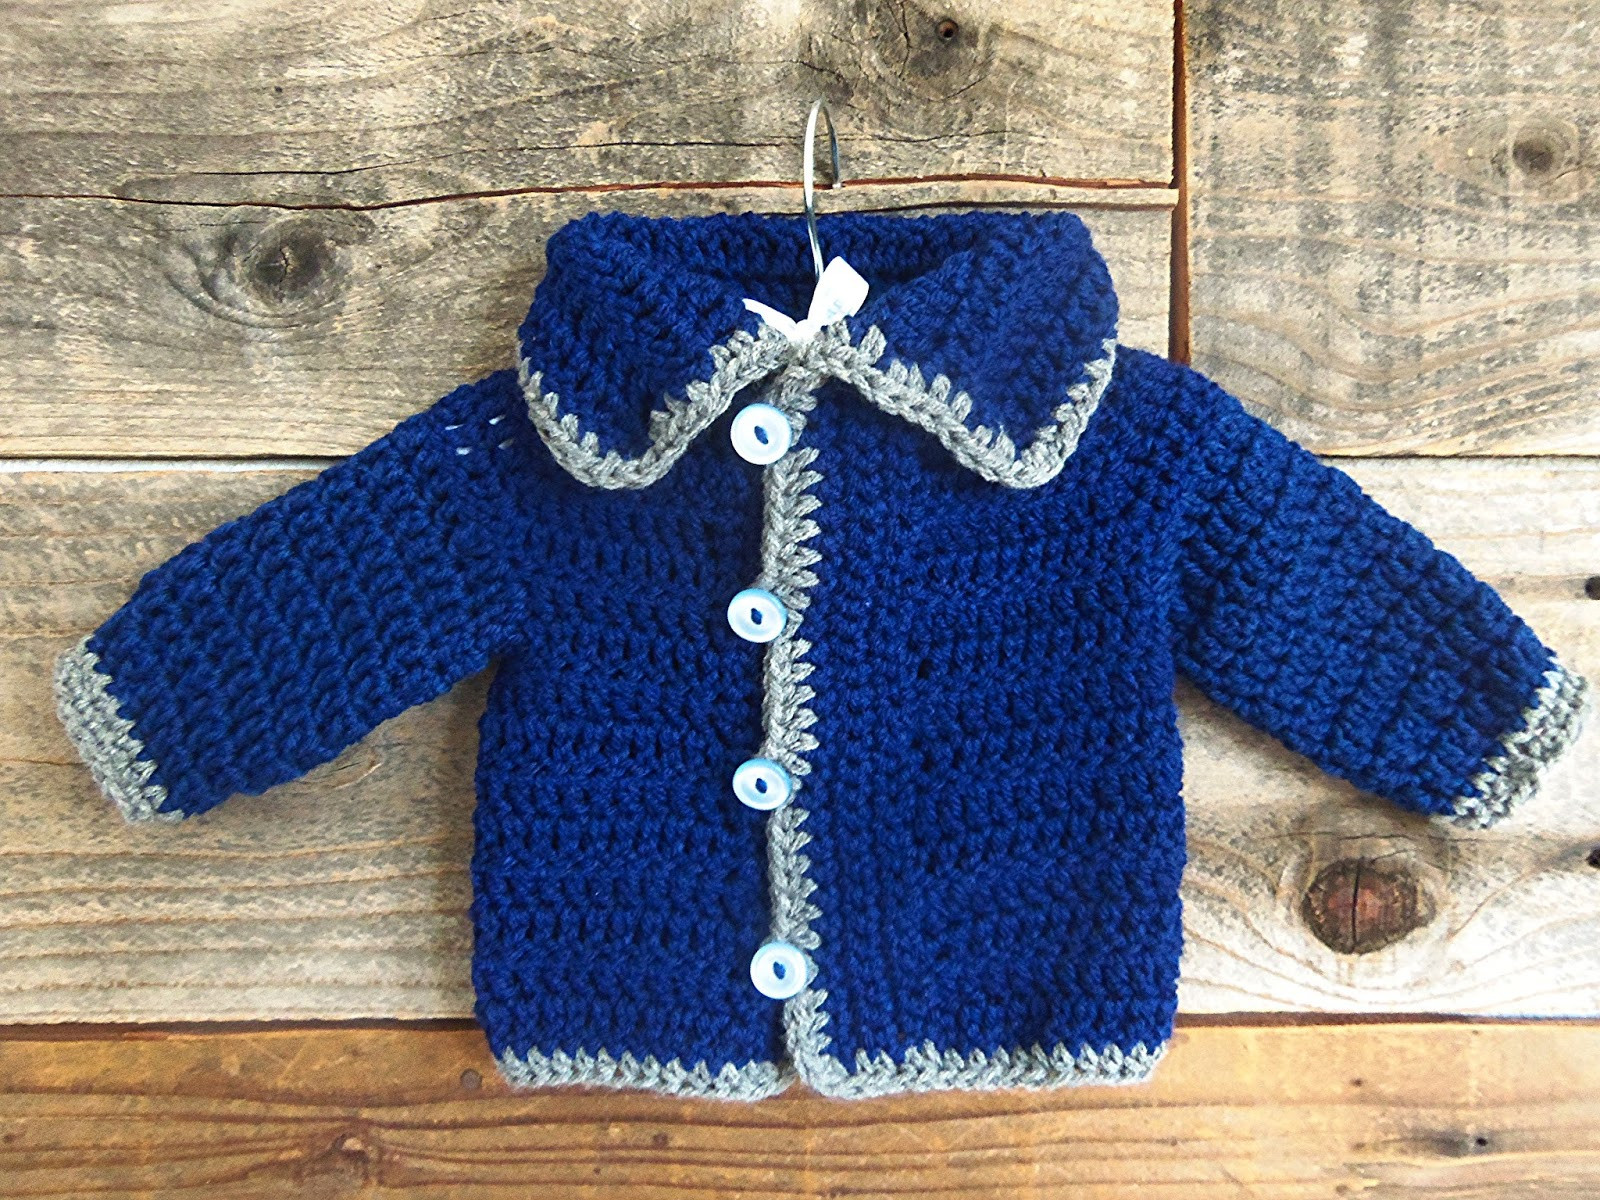 Easy Baby Sweater Crochet Pattern Best Of 3squeezes Easy Crochet Baby Sweater Of Great 47 Photos Easy Baby Sweater Crochet Pattern